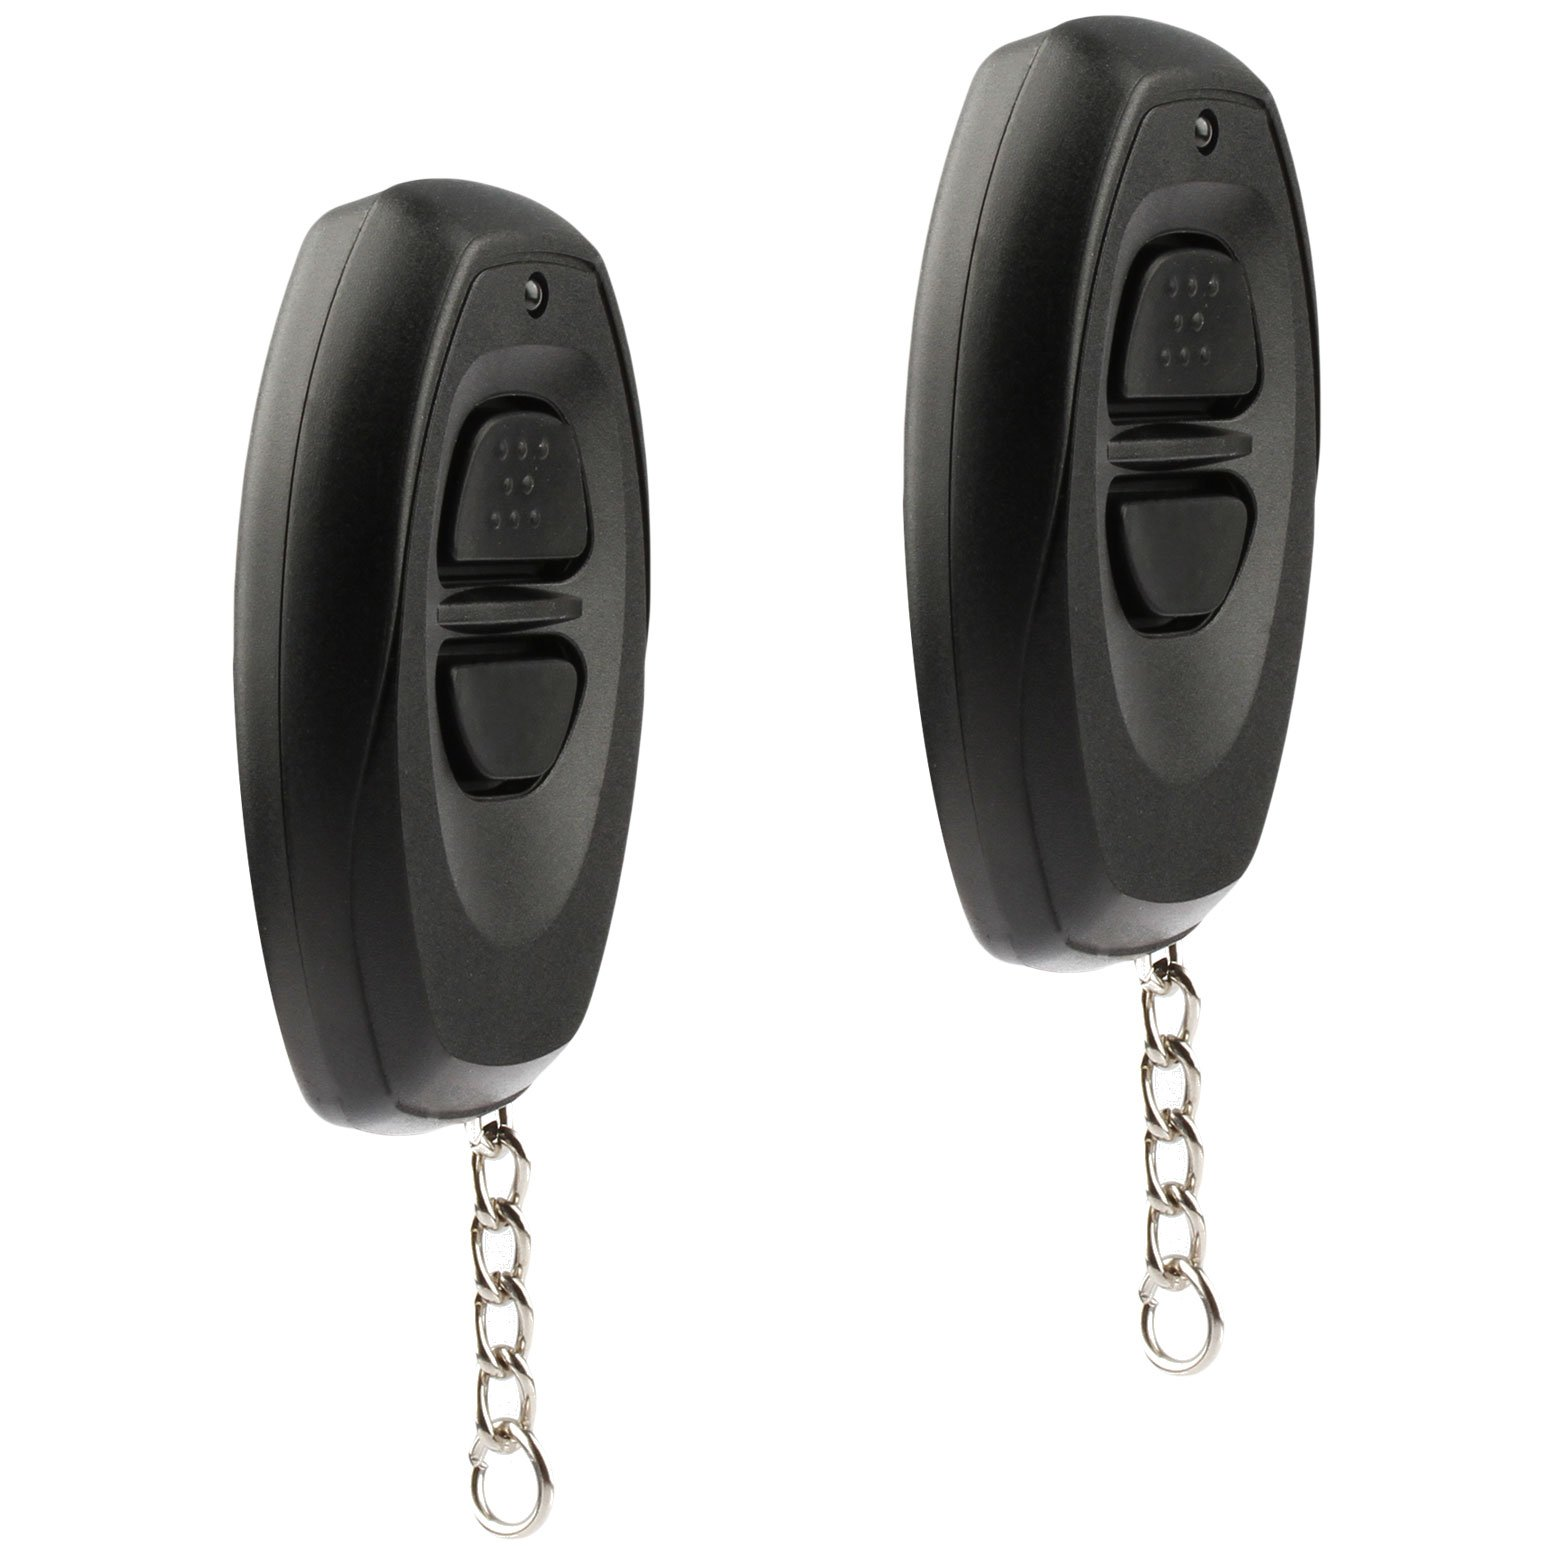 Car Key Fob Keyless Entry Remote fits Toyota Dealer Installed Systems (BAB237131-022, 08191-00870), Set of 2 by USARemote